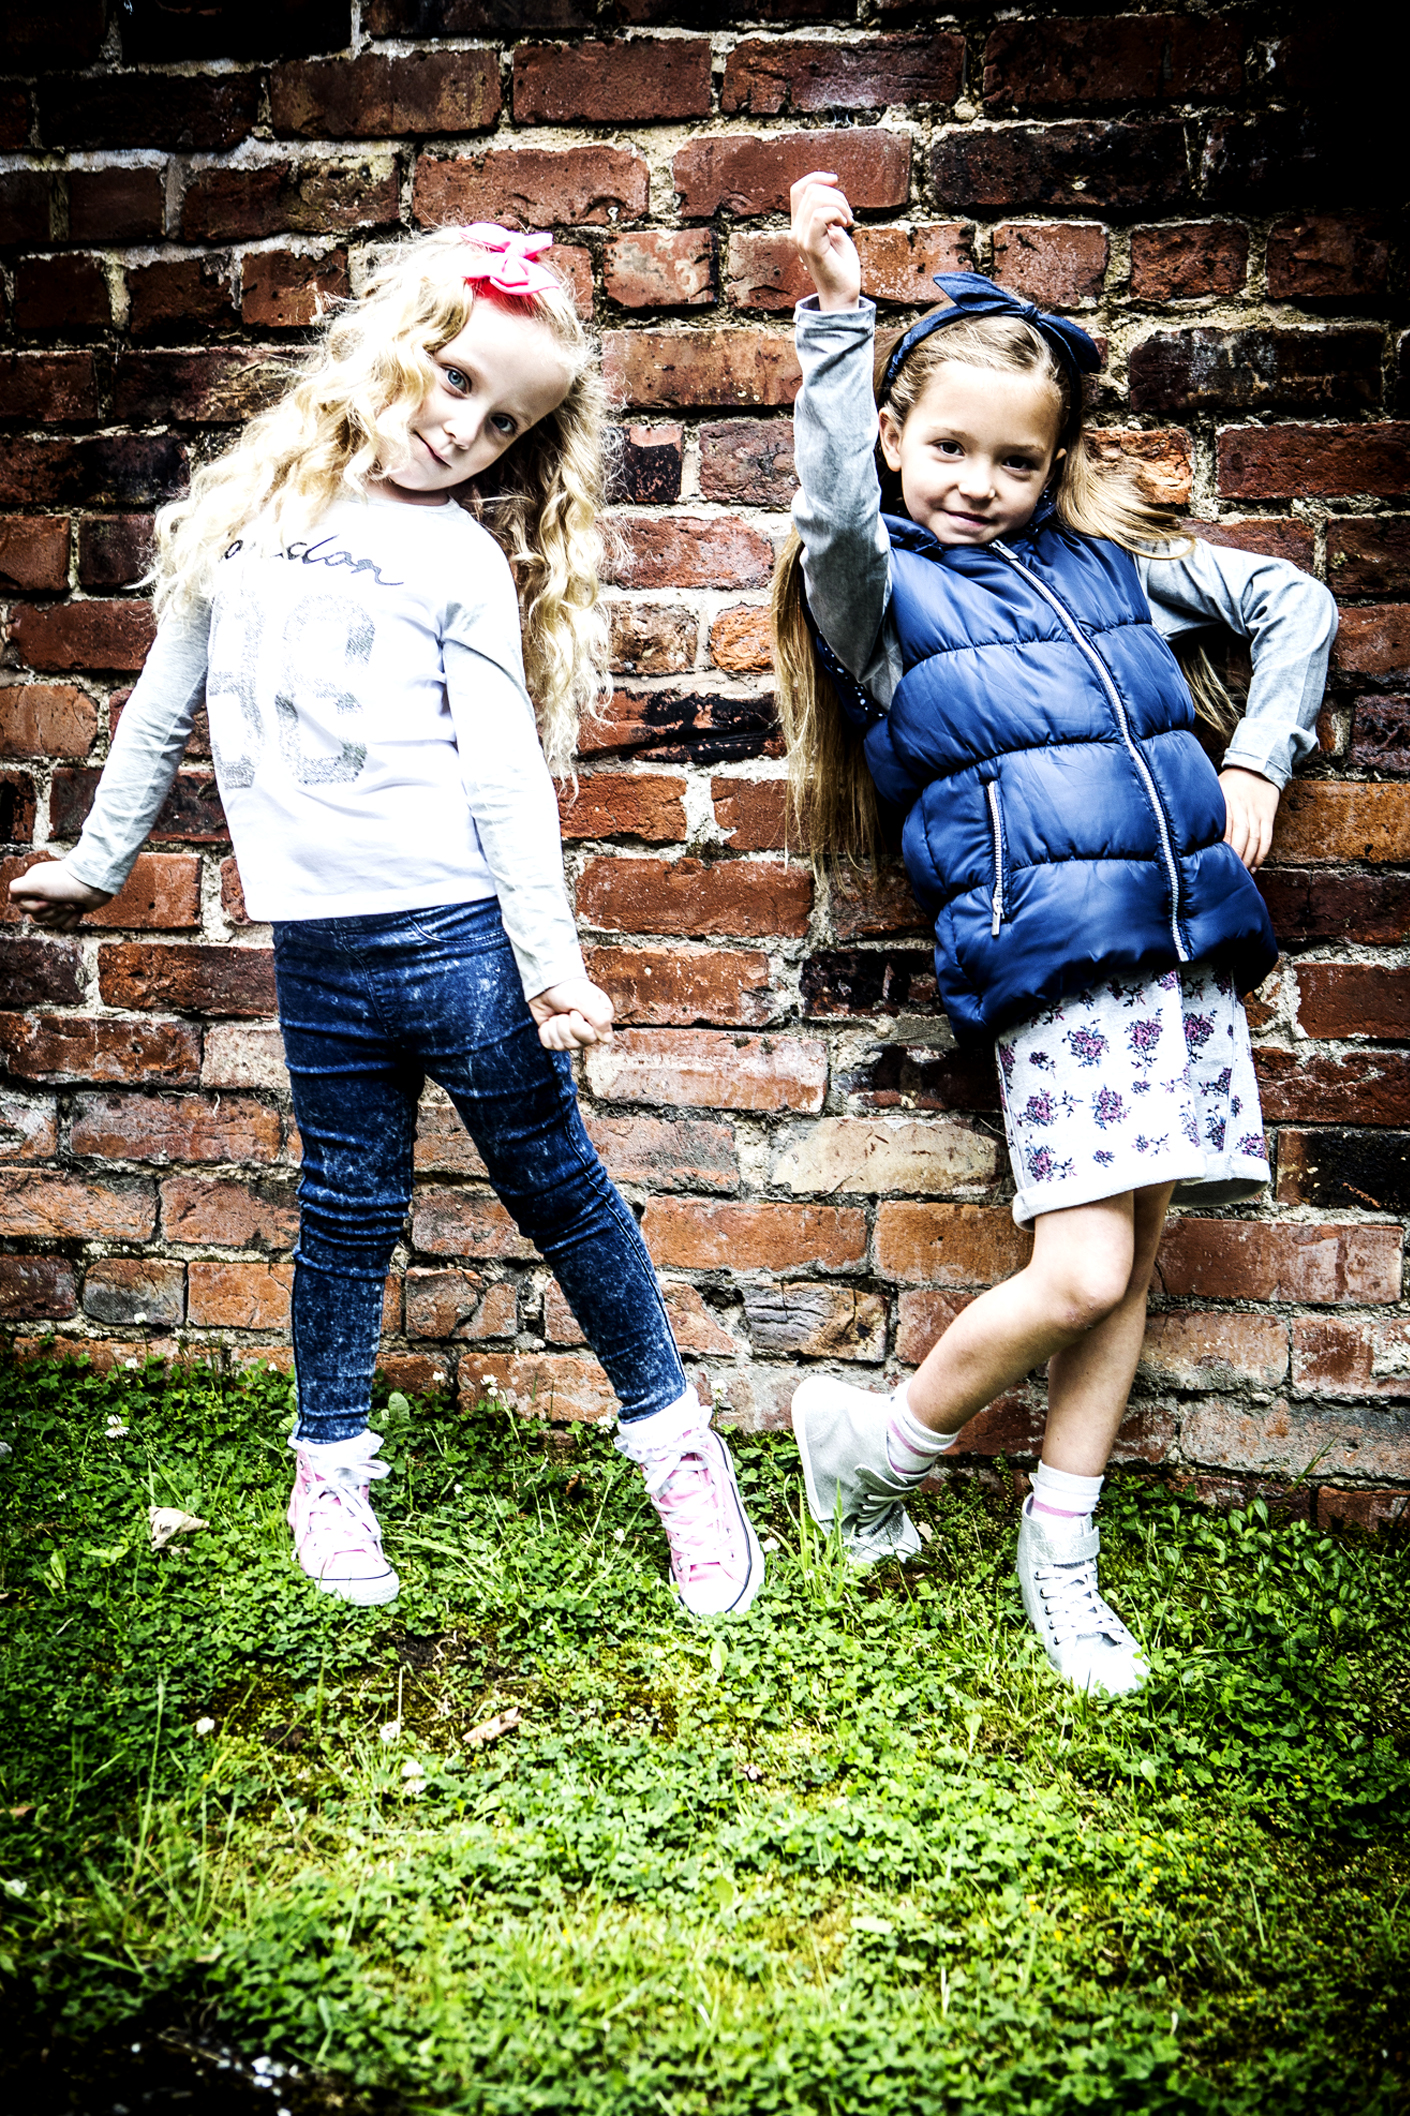 children's portrait photography in didsbury manchester